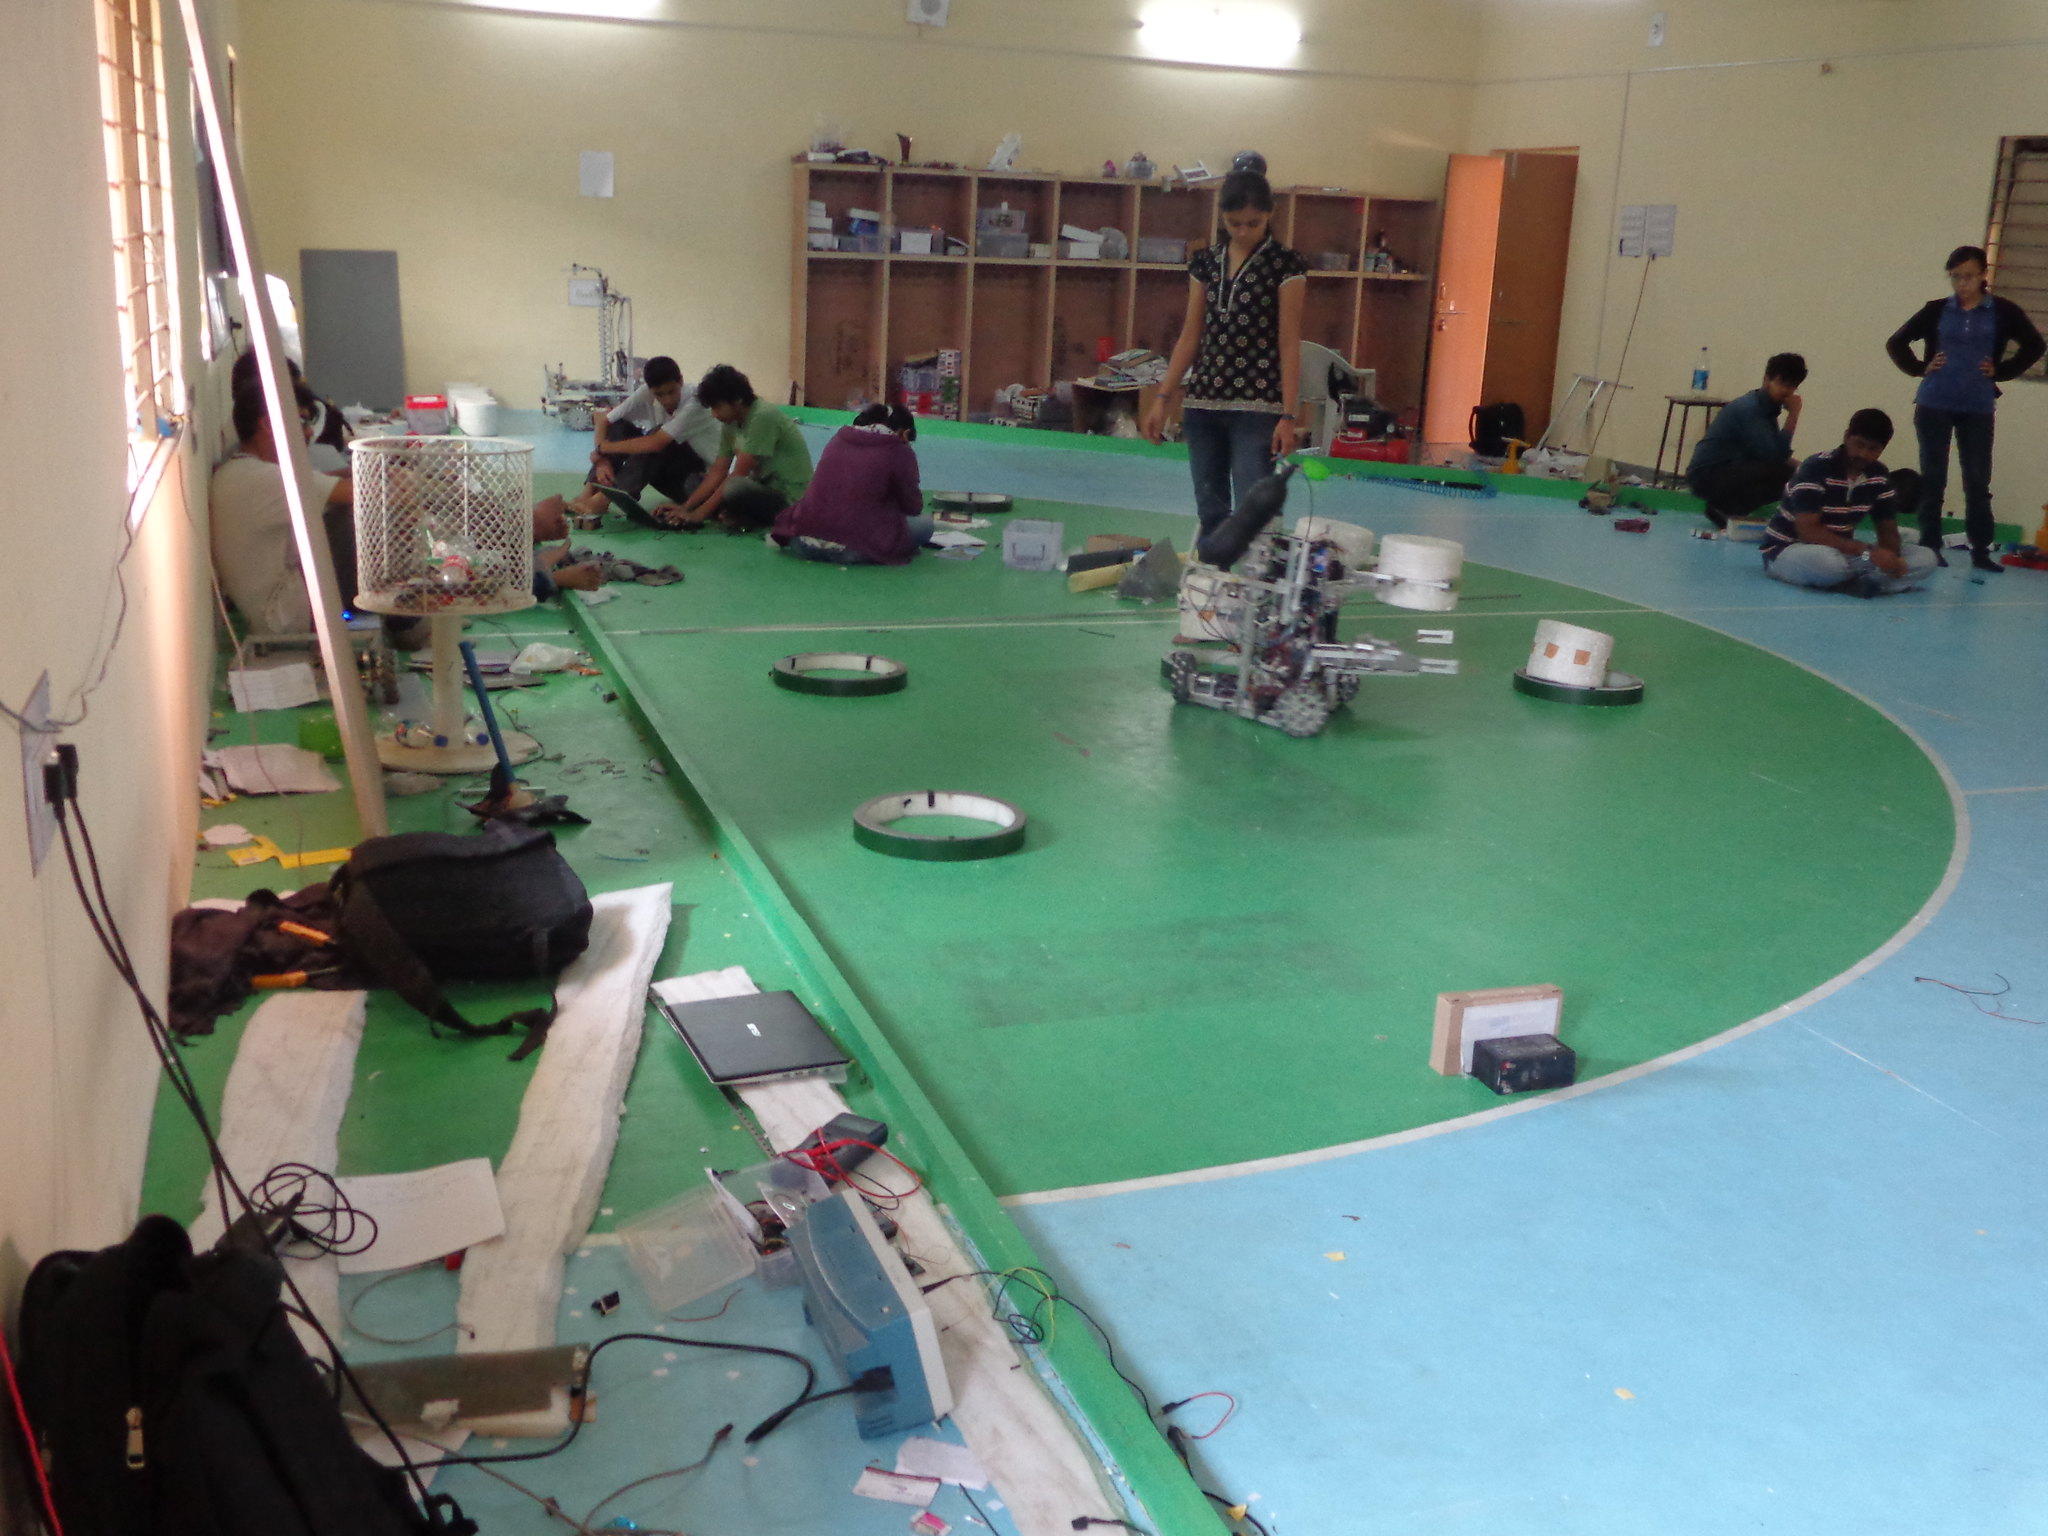 Robocon 2013 MIT Tech Team Pune: Lab setup and tools